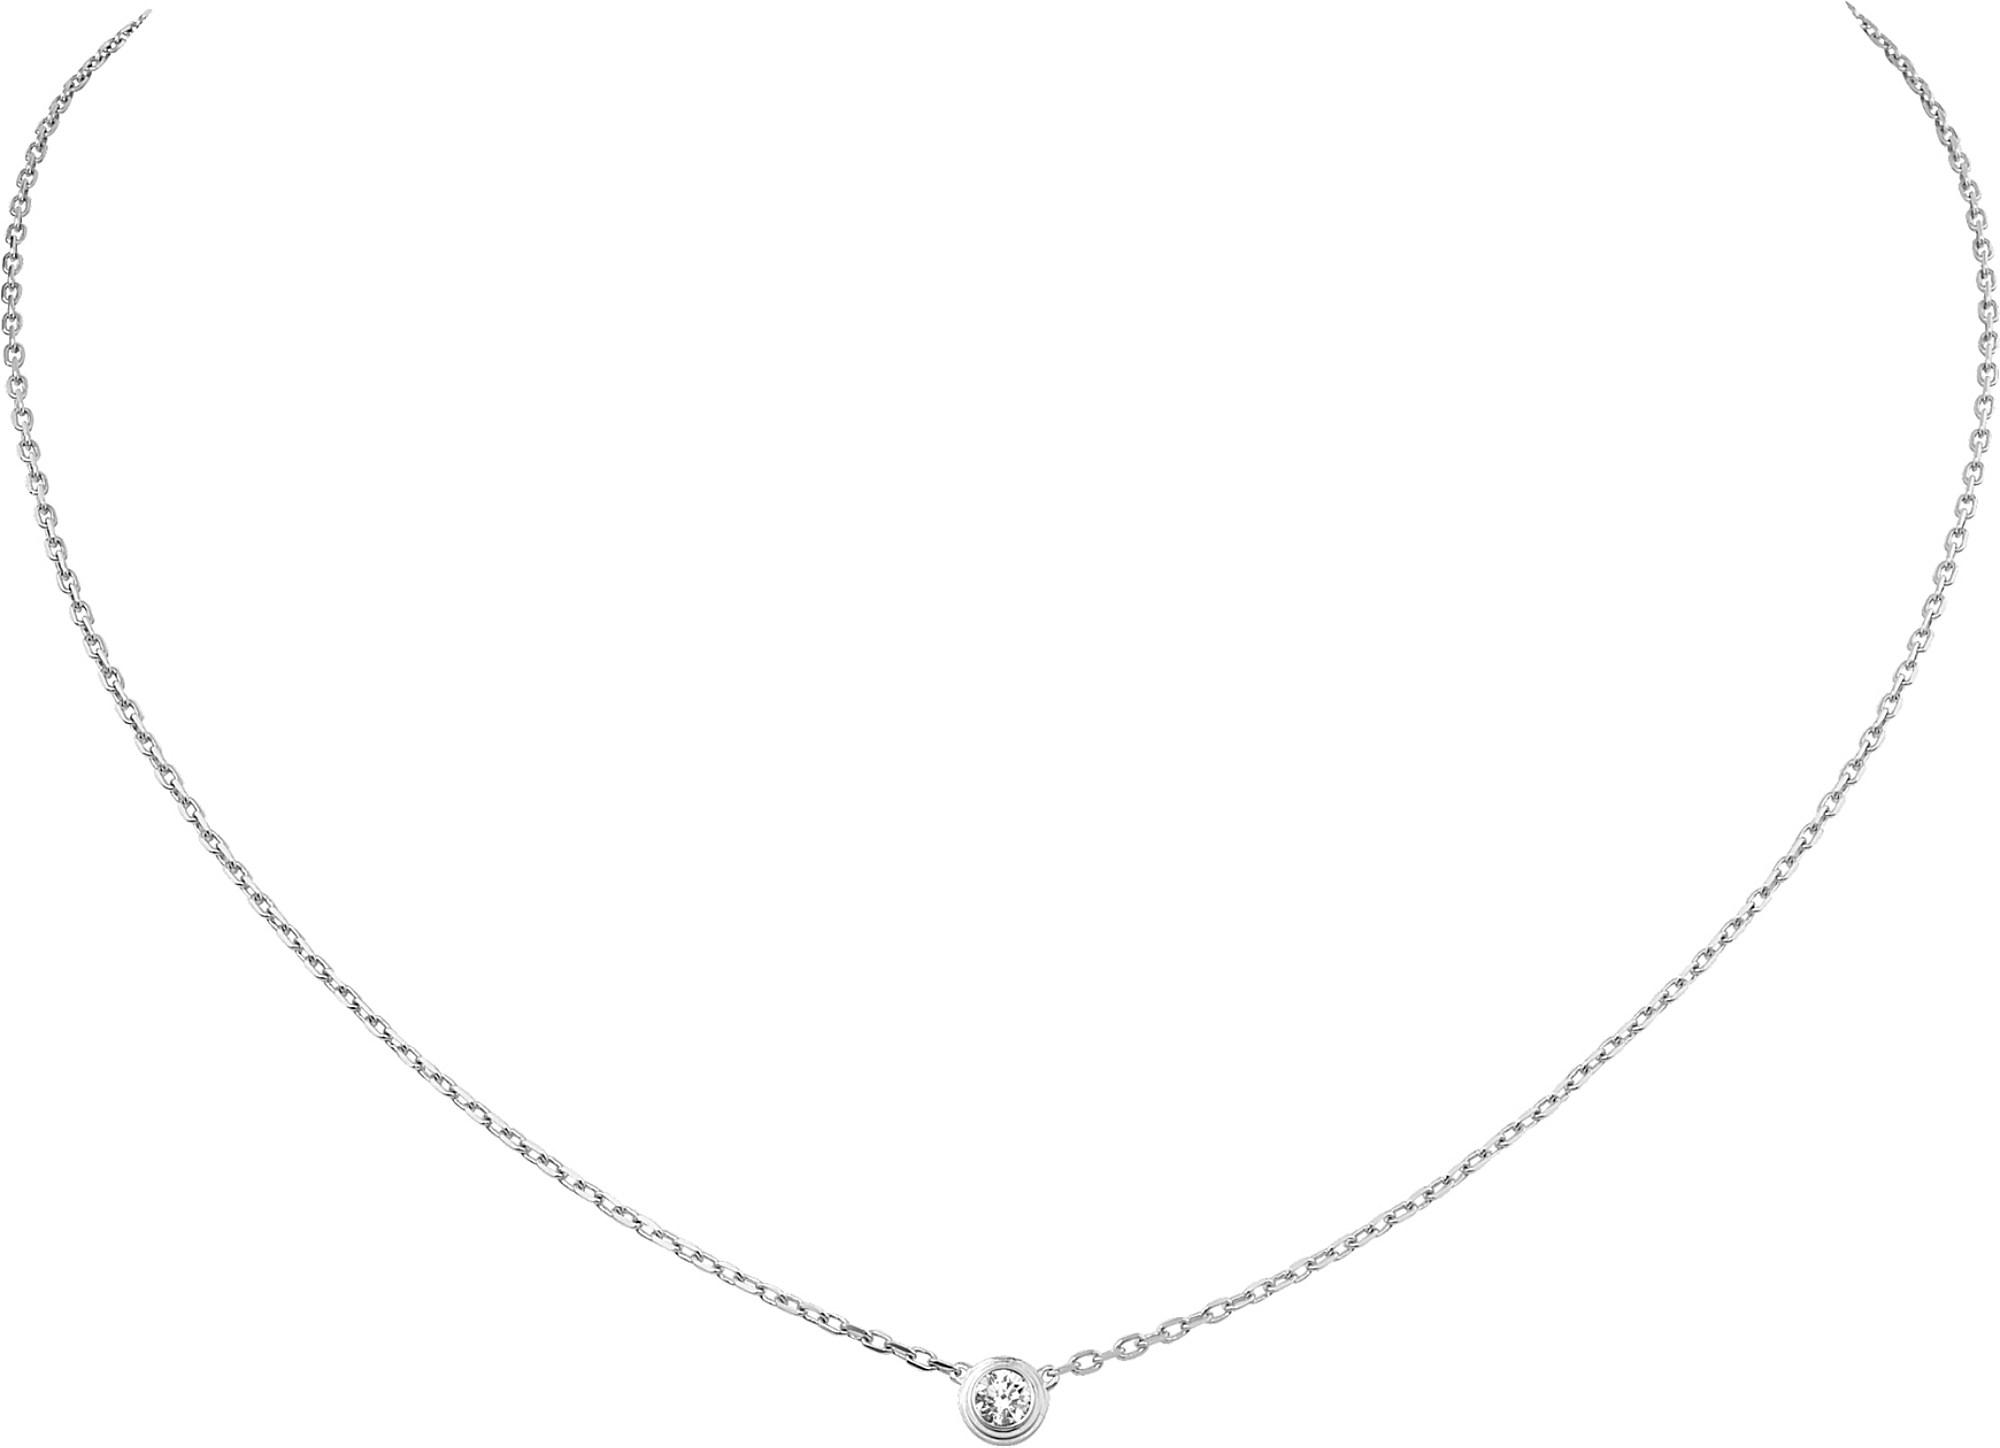 ab0b4f726dc25 Cartier Diamants Légers De 18ct White-gold And Diamond Necklace in ...